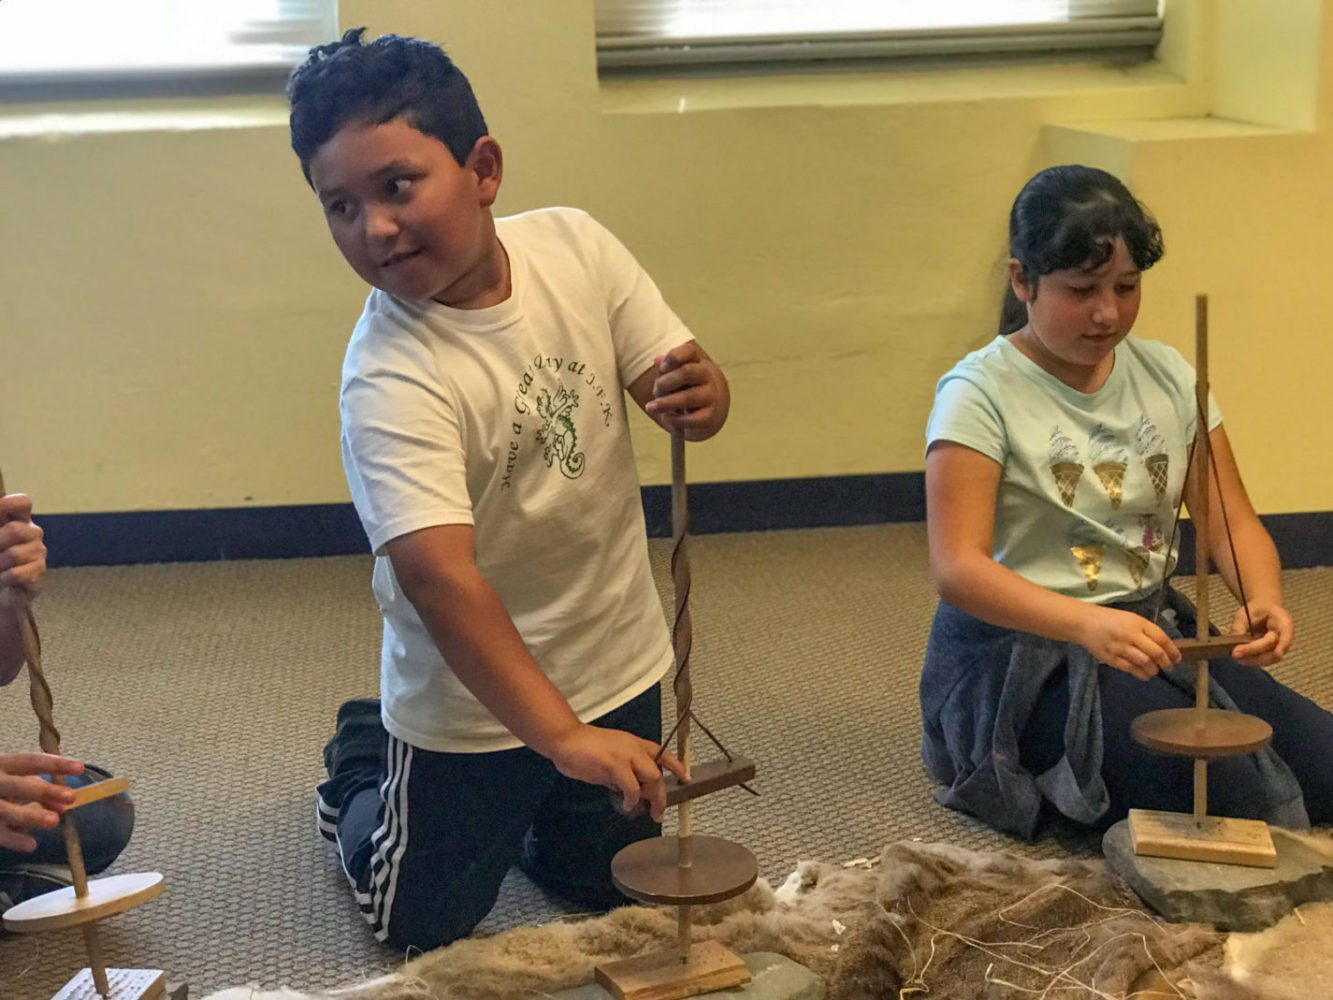 Young boy with a pump drill at Providing Plenty school program at the San Mateo County History Museum